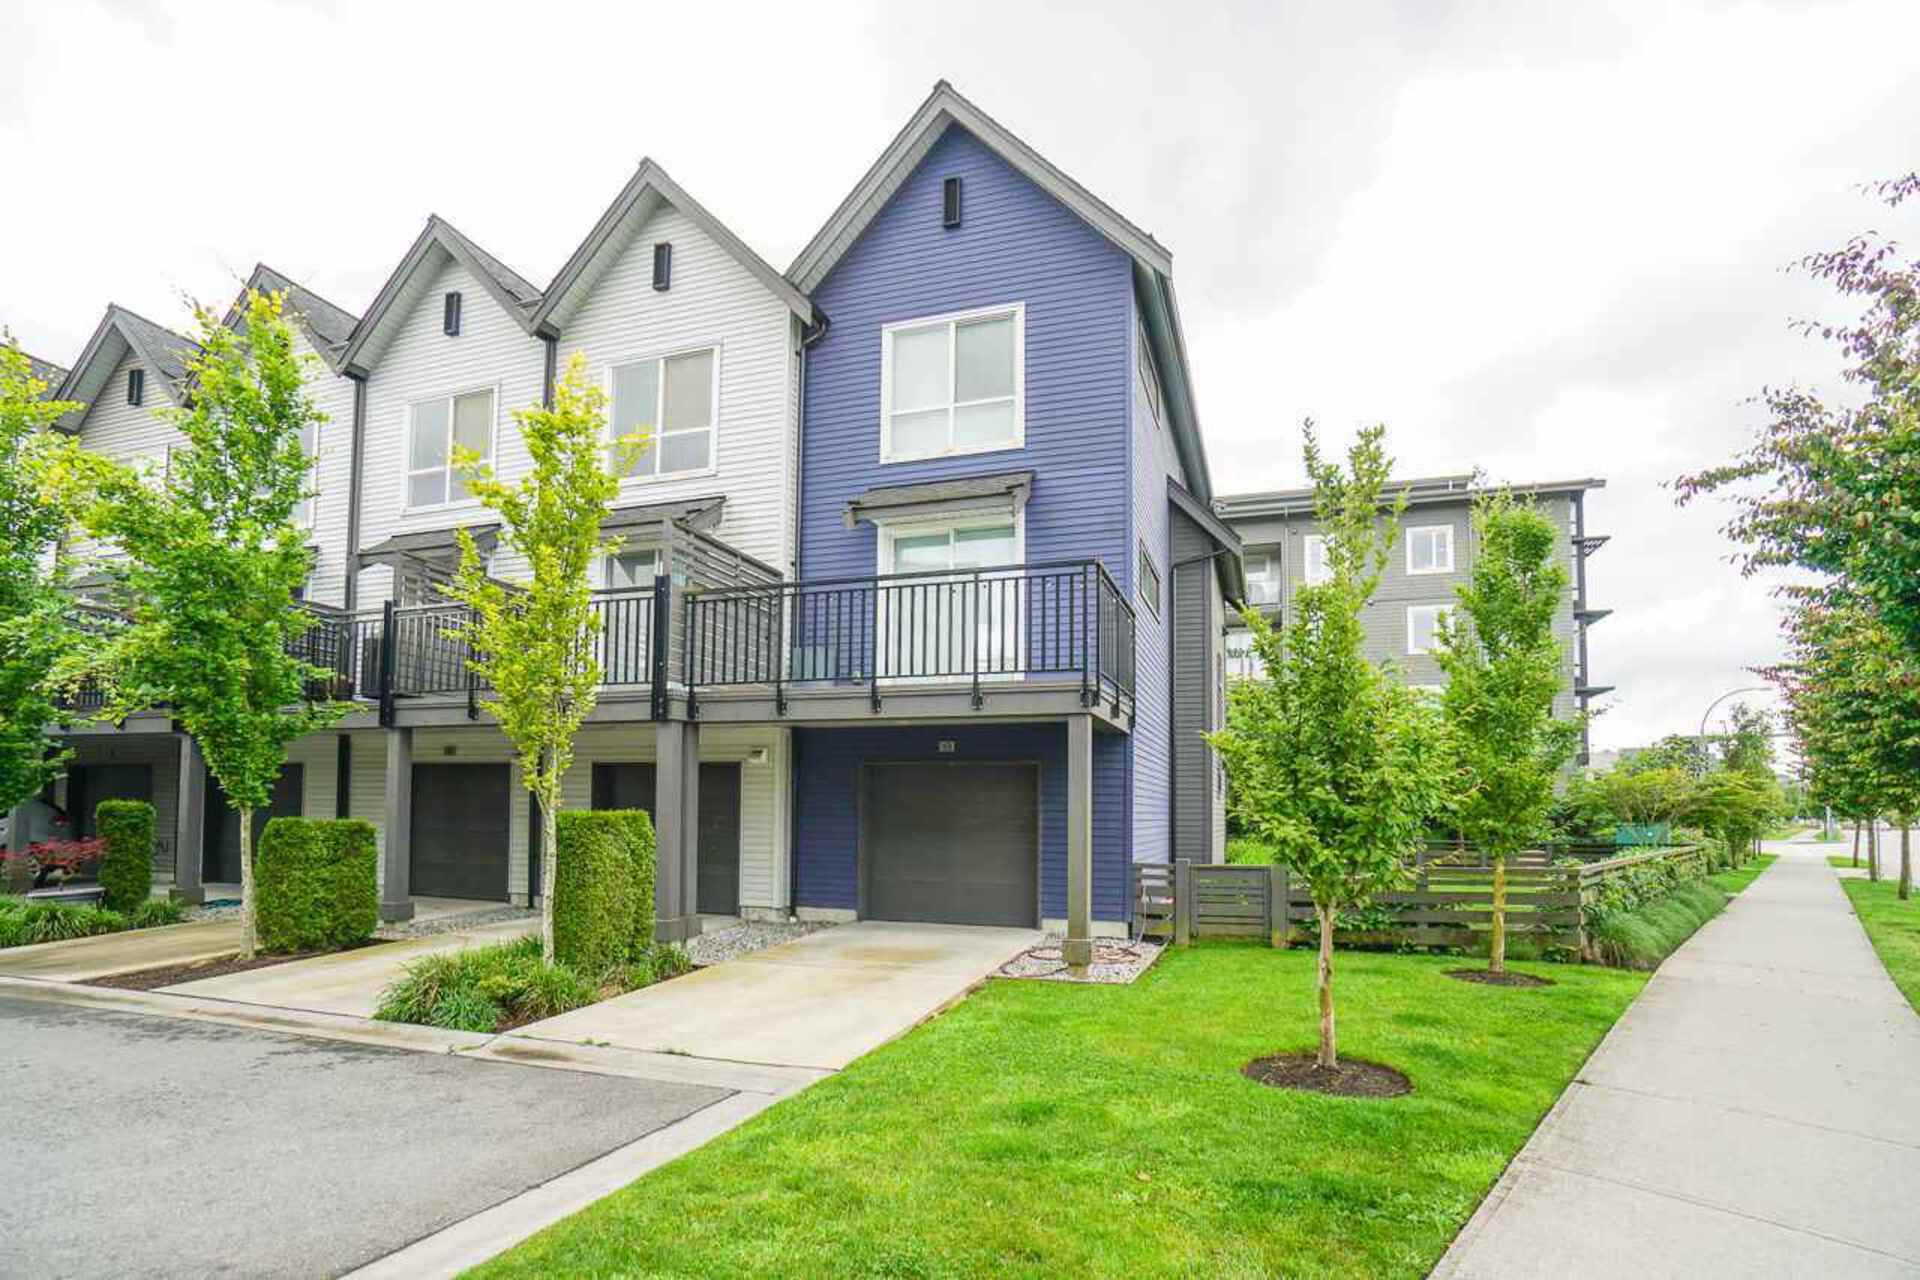 13 - 2325 Ranger Lane, Riverwood, Port Coquitlam